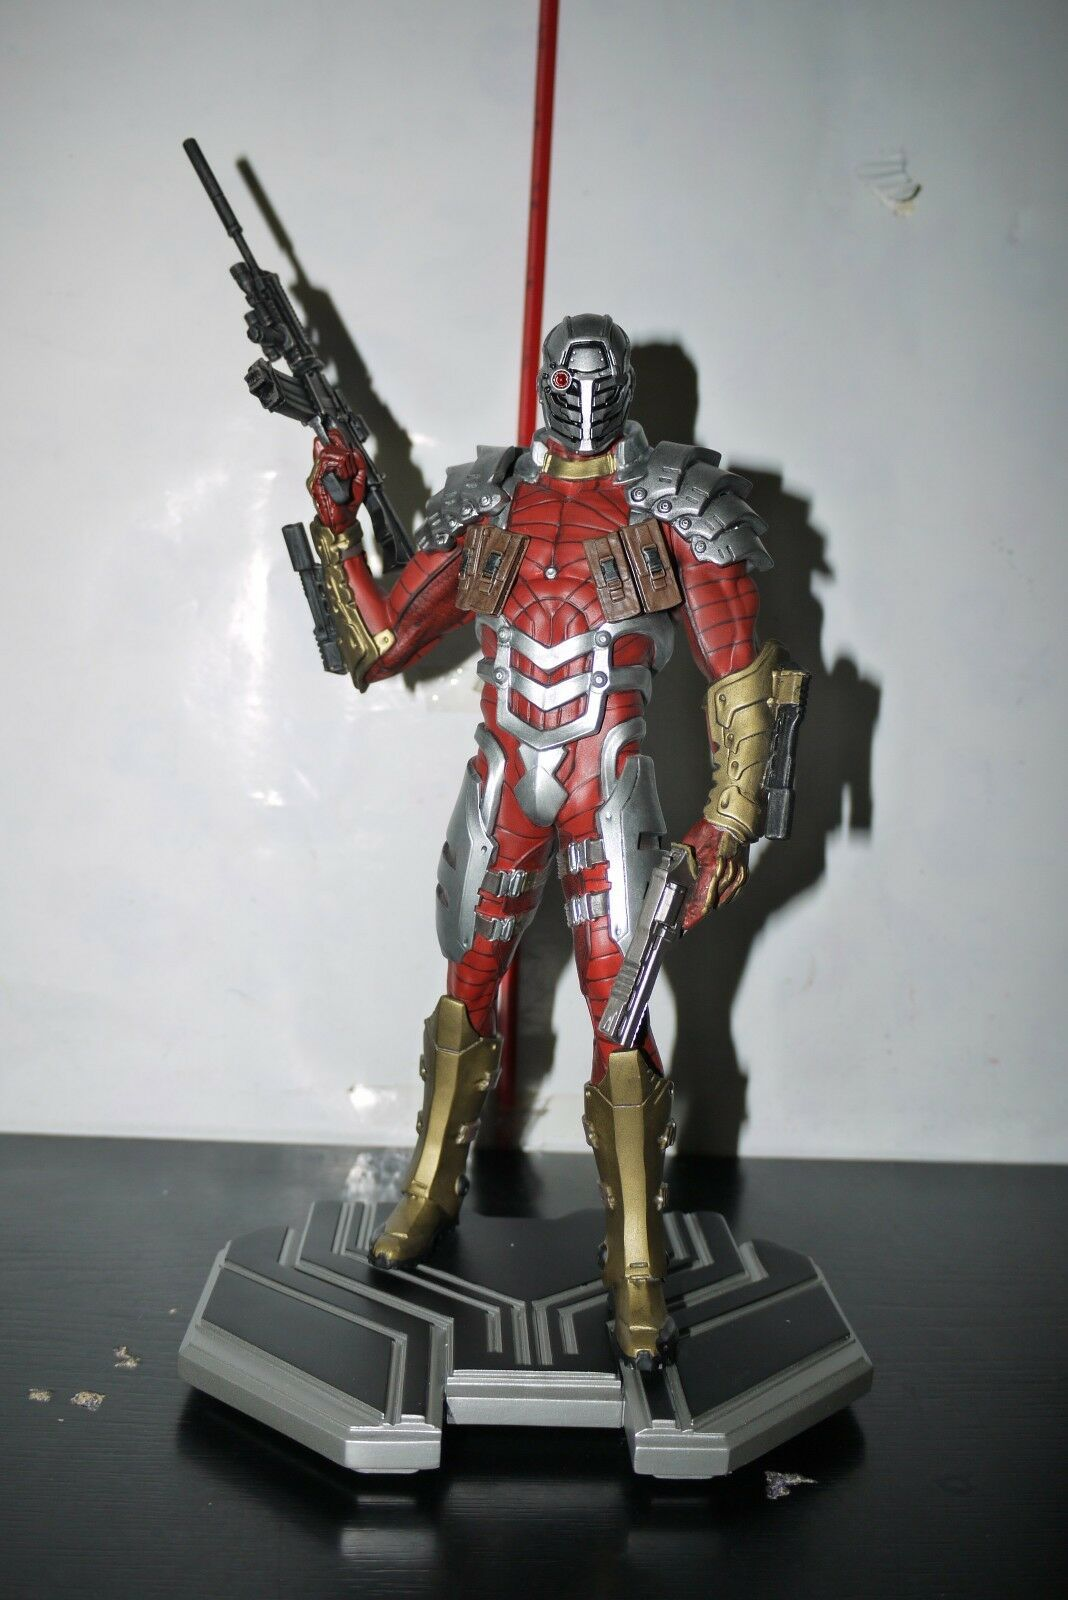 DC iconos Deadshot 1 6 estatua Collectibles 955 5200 En Caja